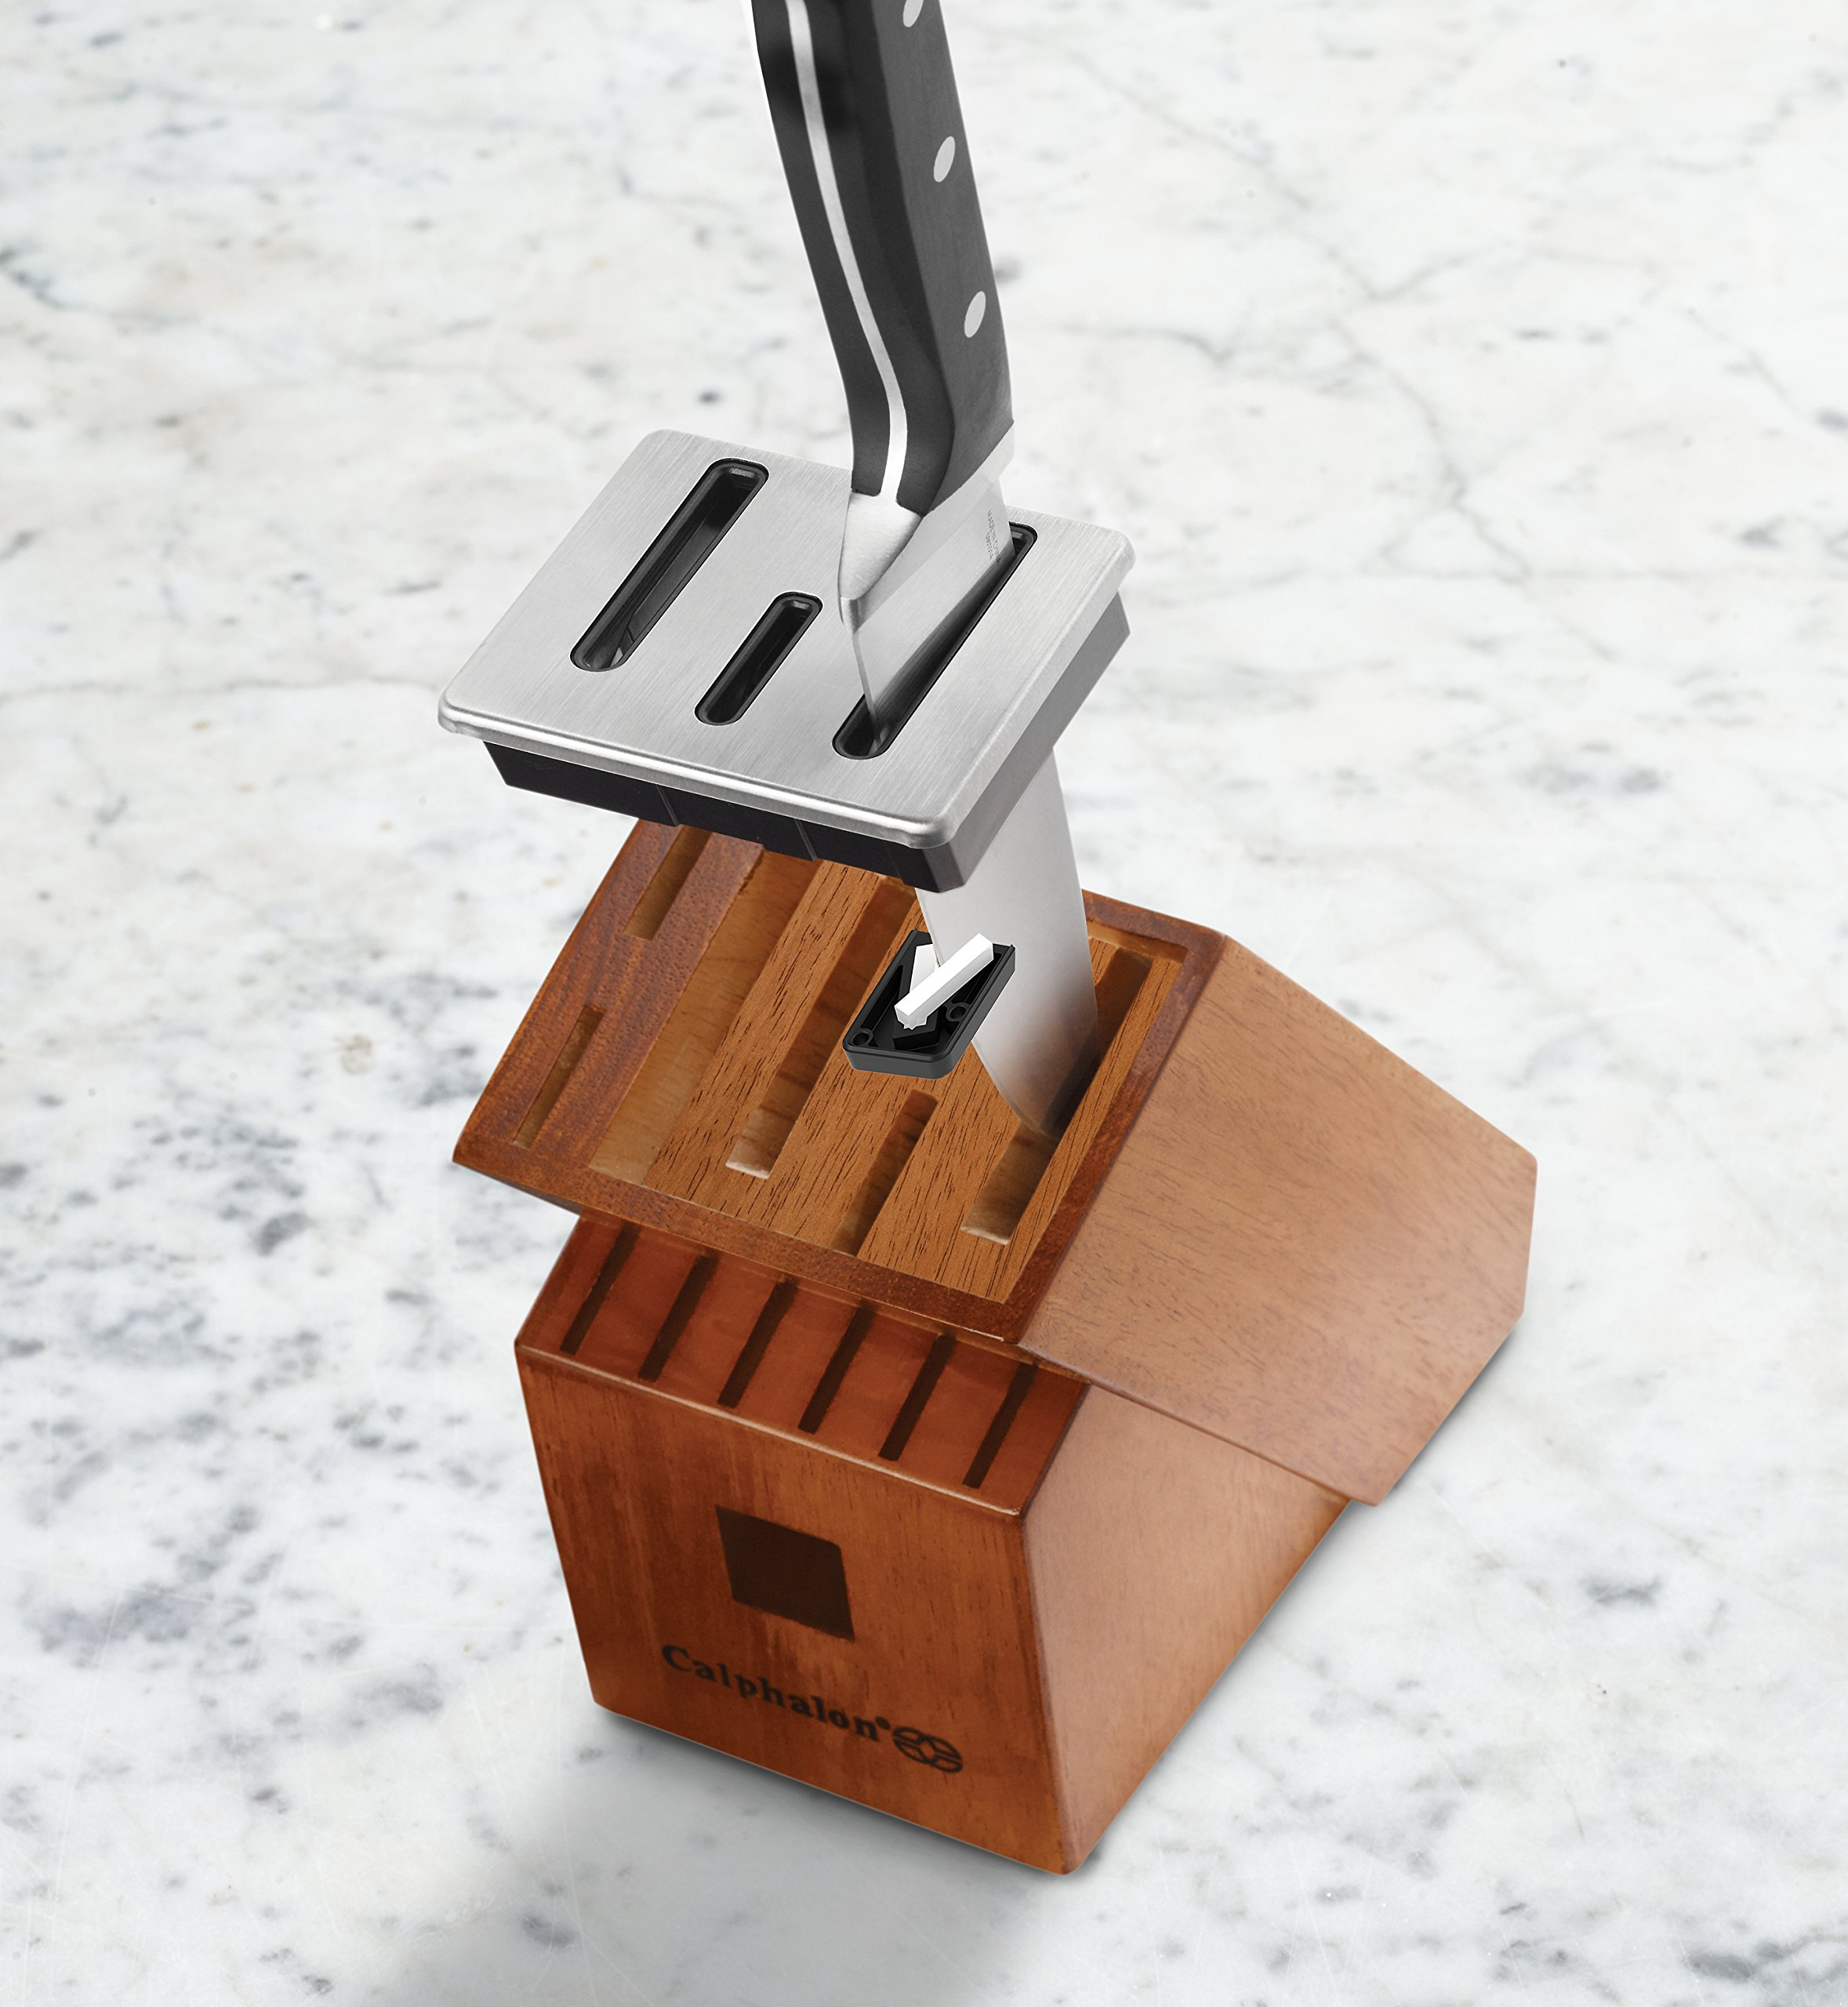 Calphalon Classic Self-Sharpening Cutlery Knife Block Set with SharpIN Technology, 12 Piece by Calphalon (Image #4)